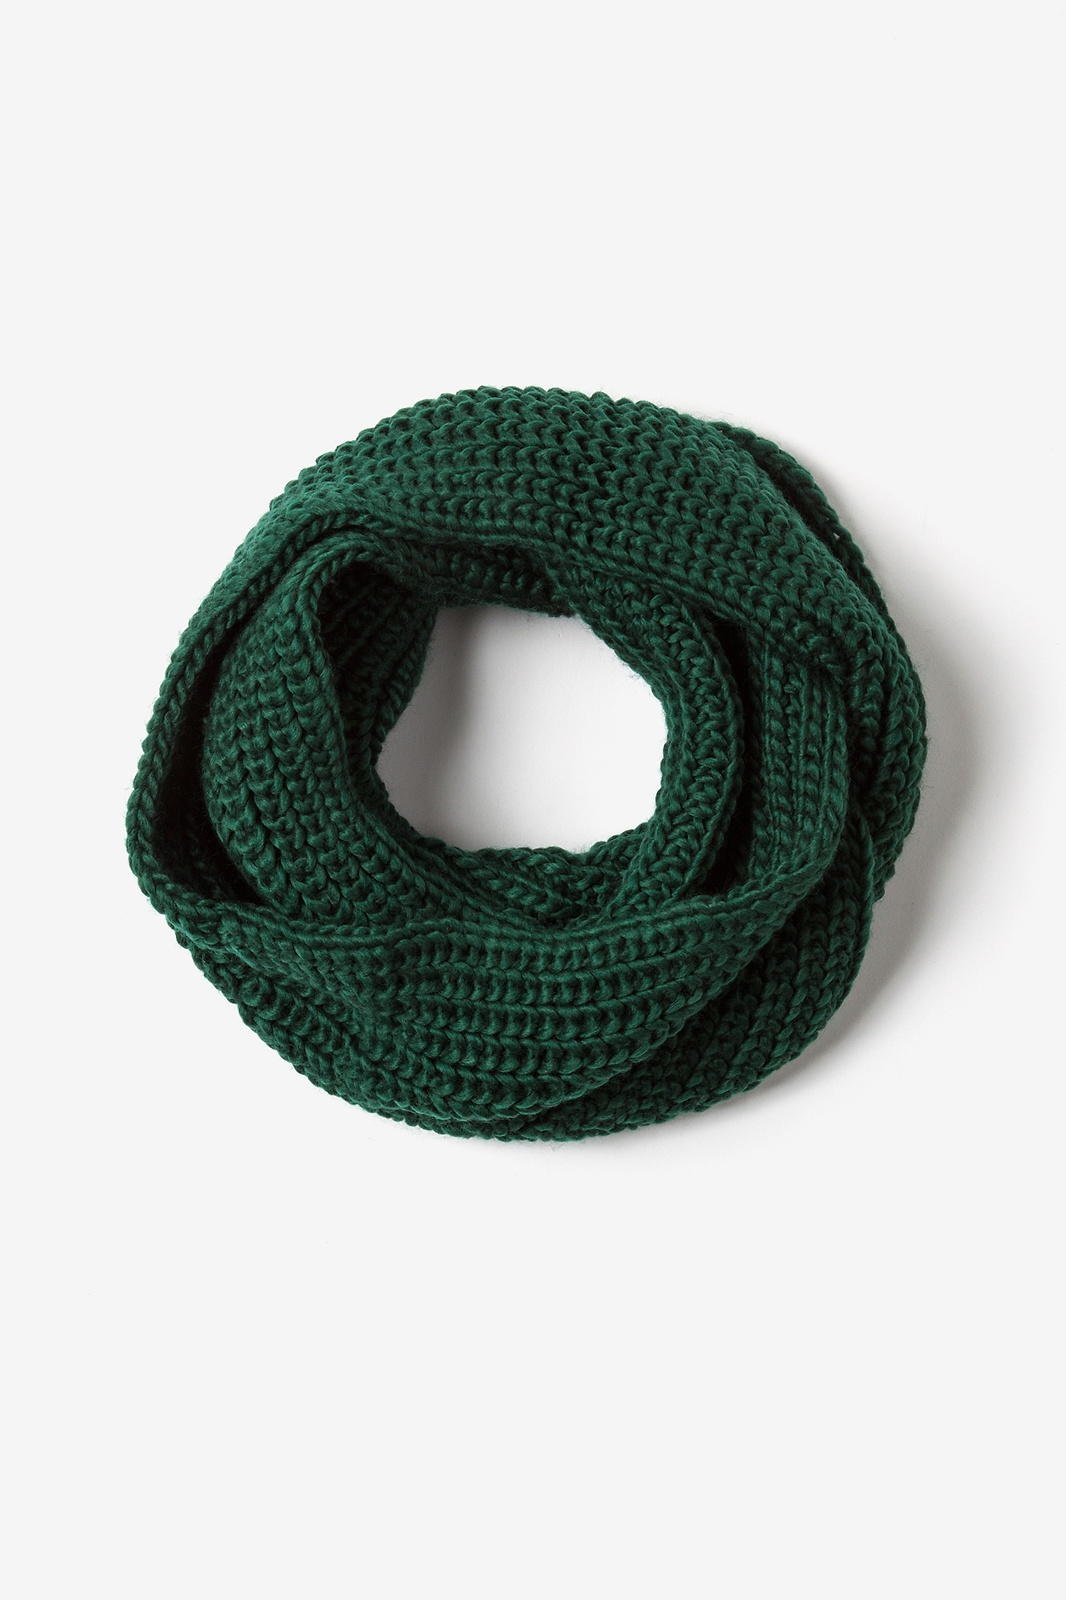 5573121a9b583 Hunter Green Acrylic Concord Knit Infinity Scarf | Scarves.com